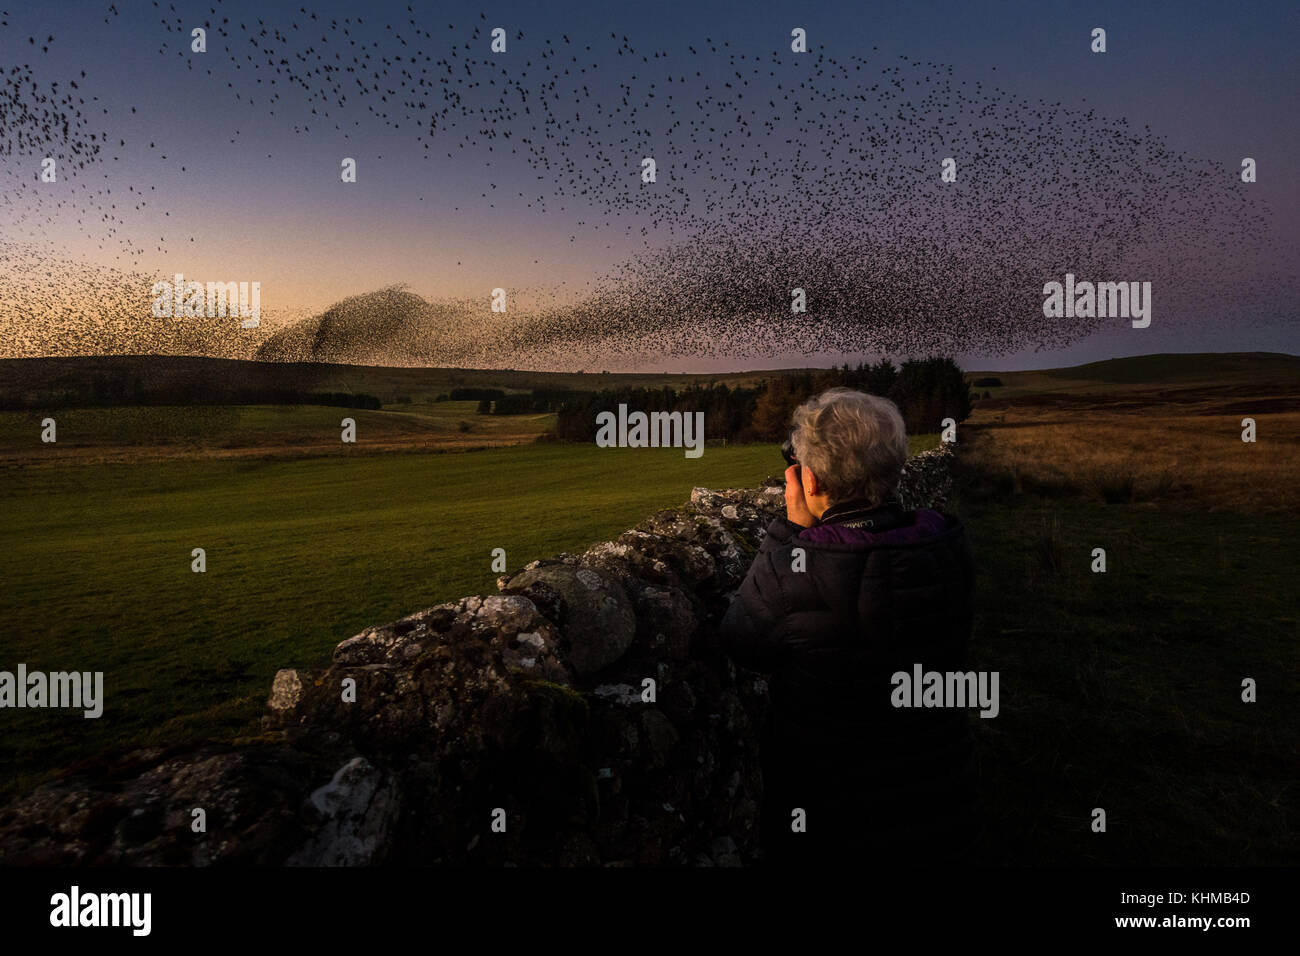 Woman photographing the beautiful shape of a starling murmuration winter roost in the evening sunset sky - Stock Image